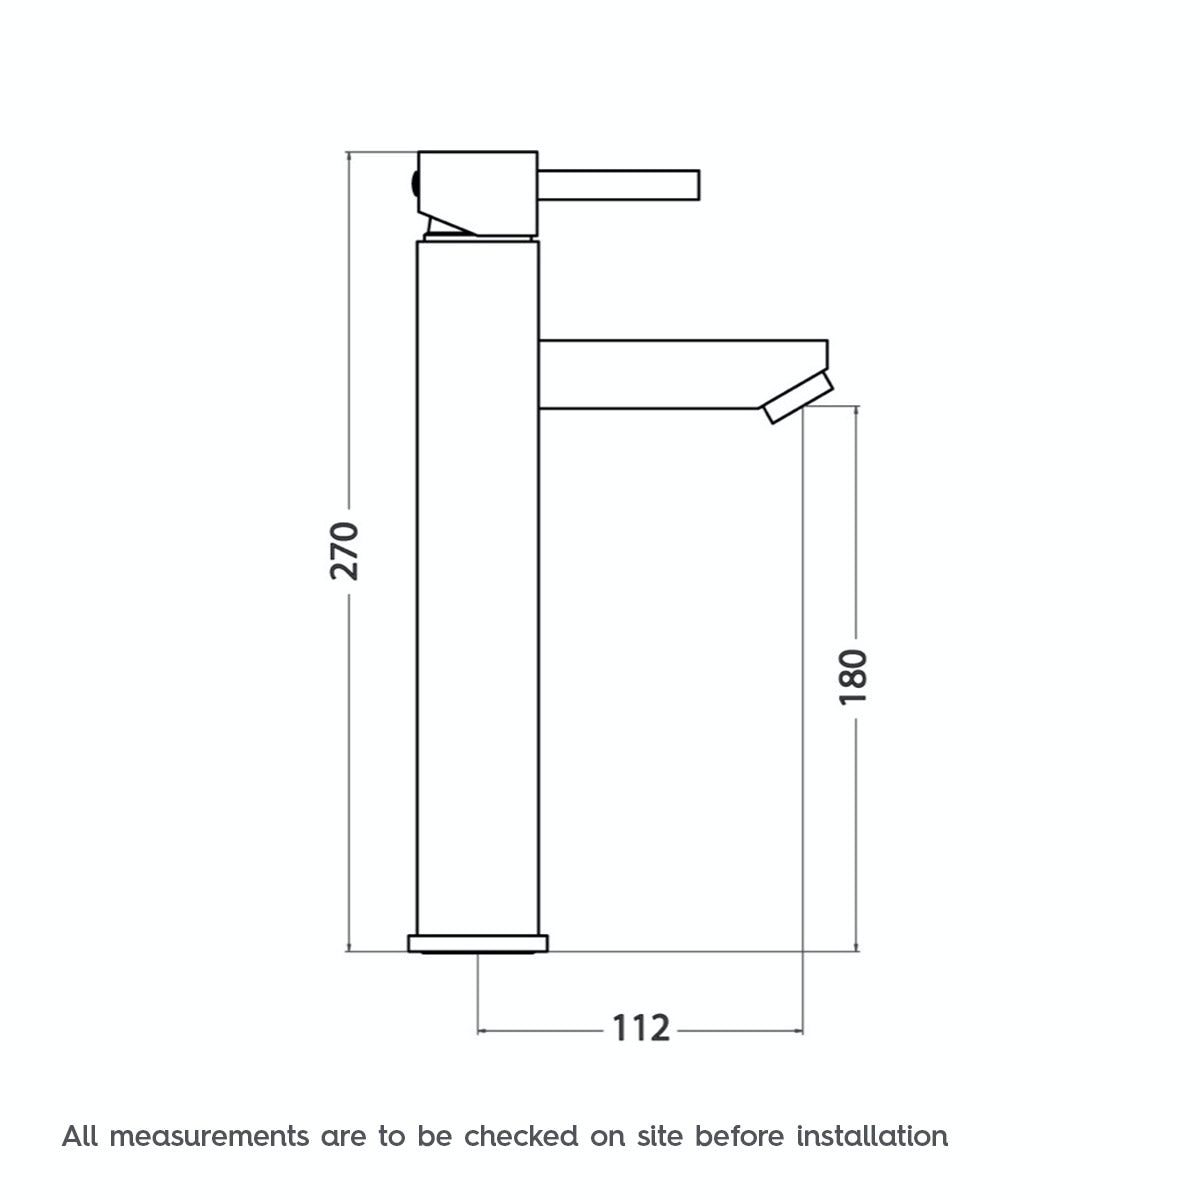 Dimensions for Cubik high rise counter top basin mixer tap